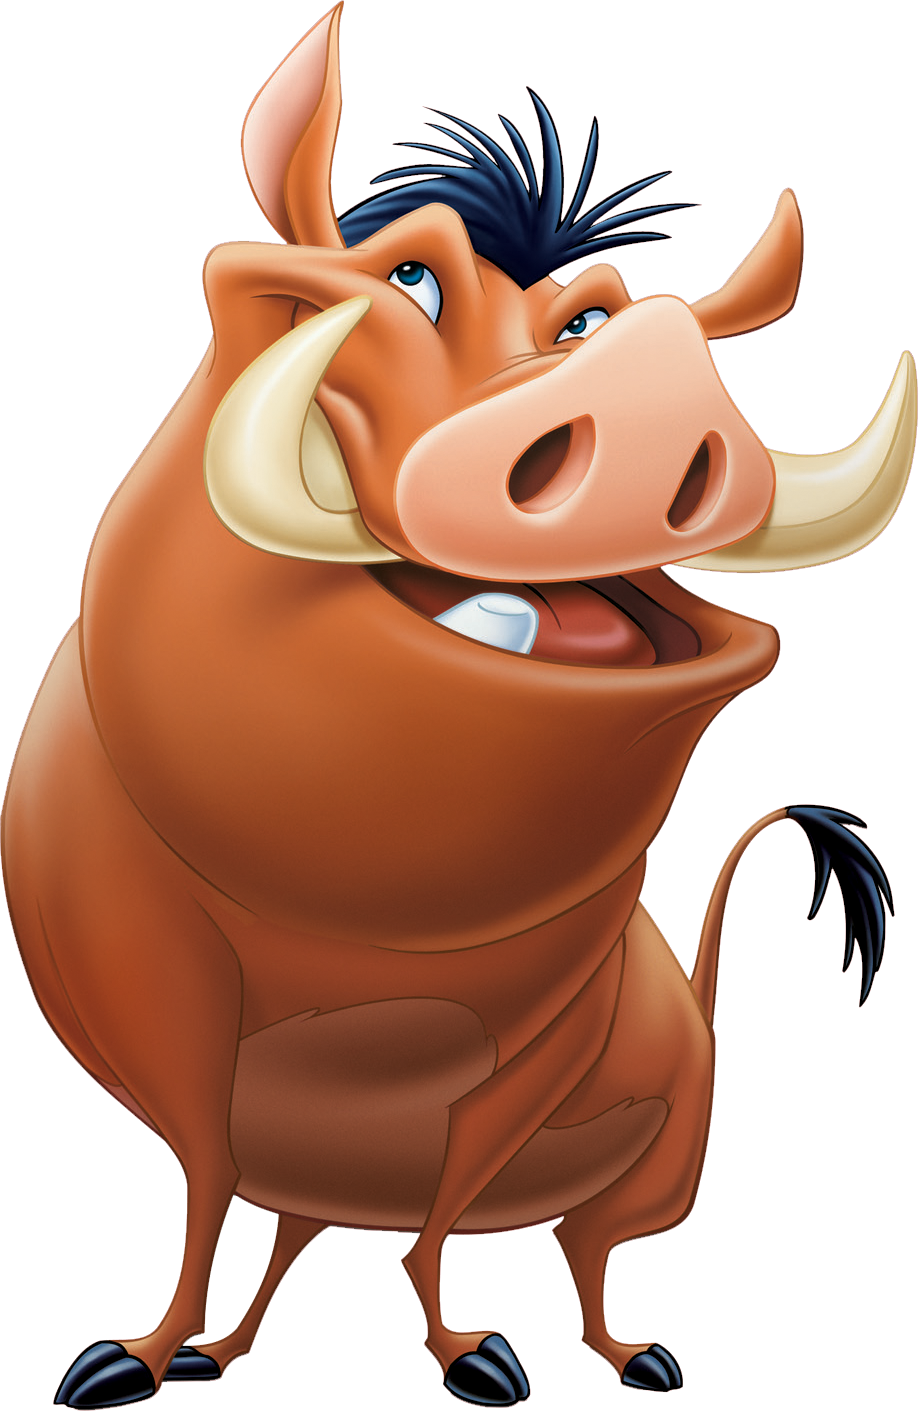 pumbaa disney wiki fandom powered by wikia nutcracker clip art gold nutcracker clip art images free